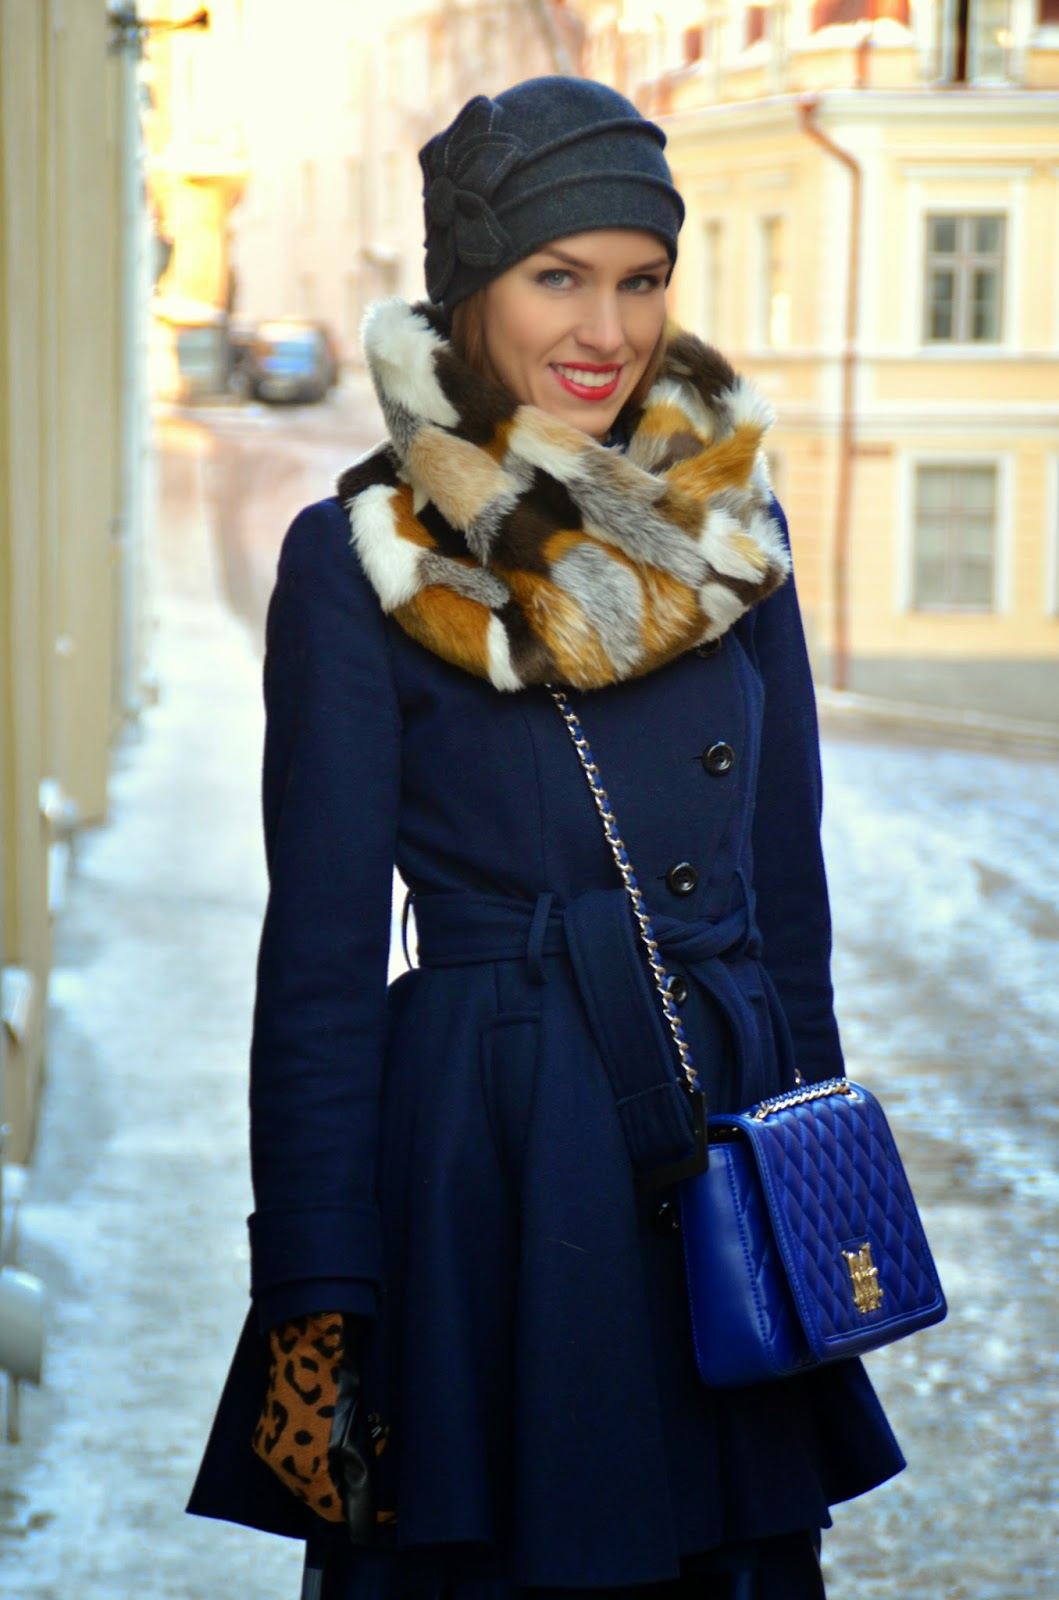 gina-tricot-fur-snood-asos-wool-coat-moschino-blue-bag